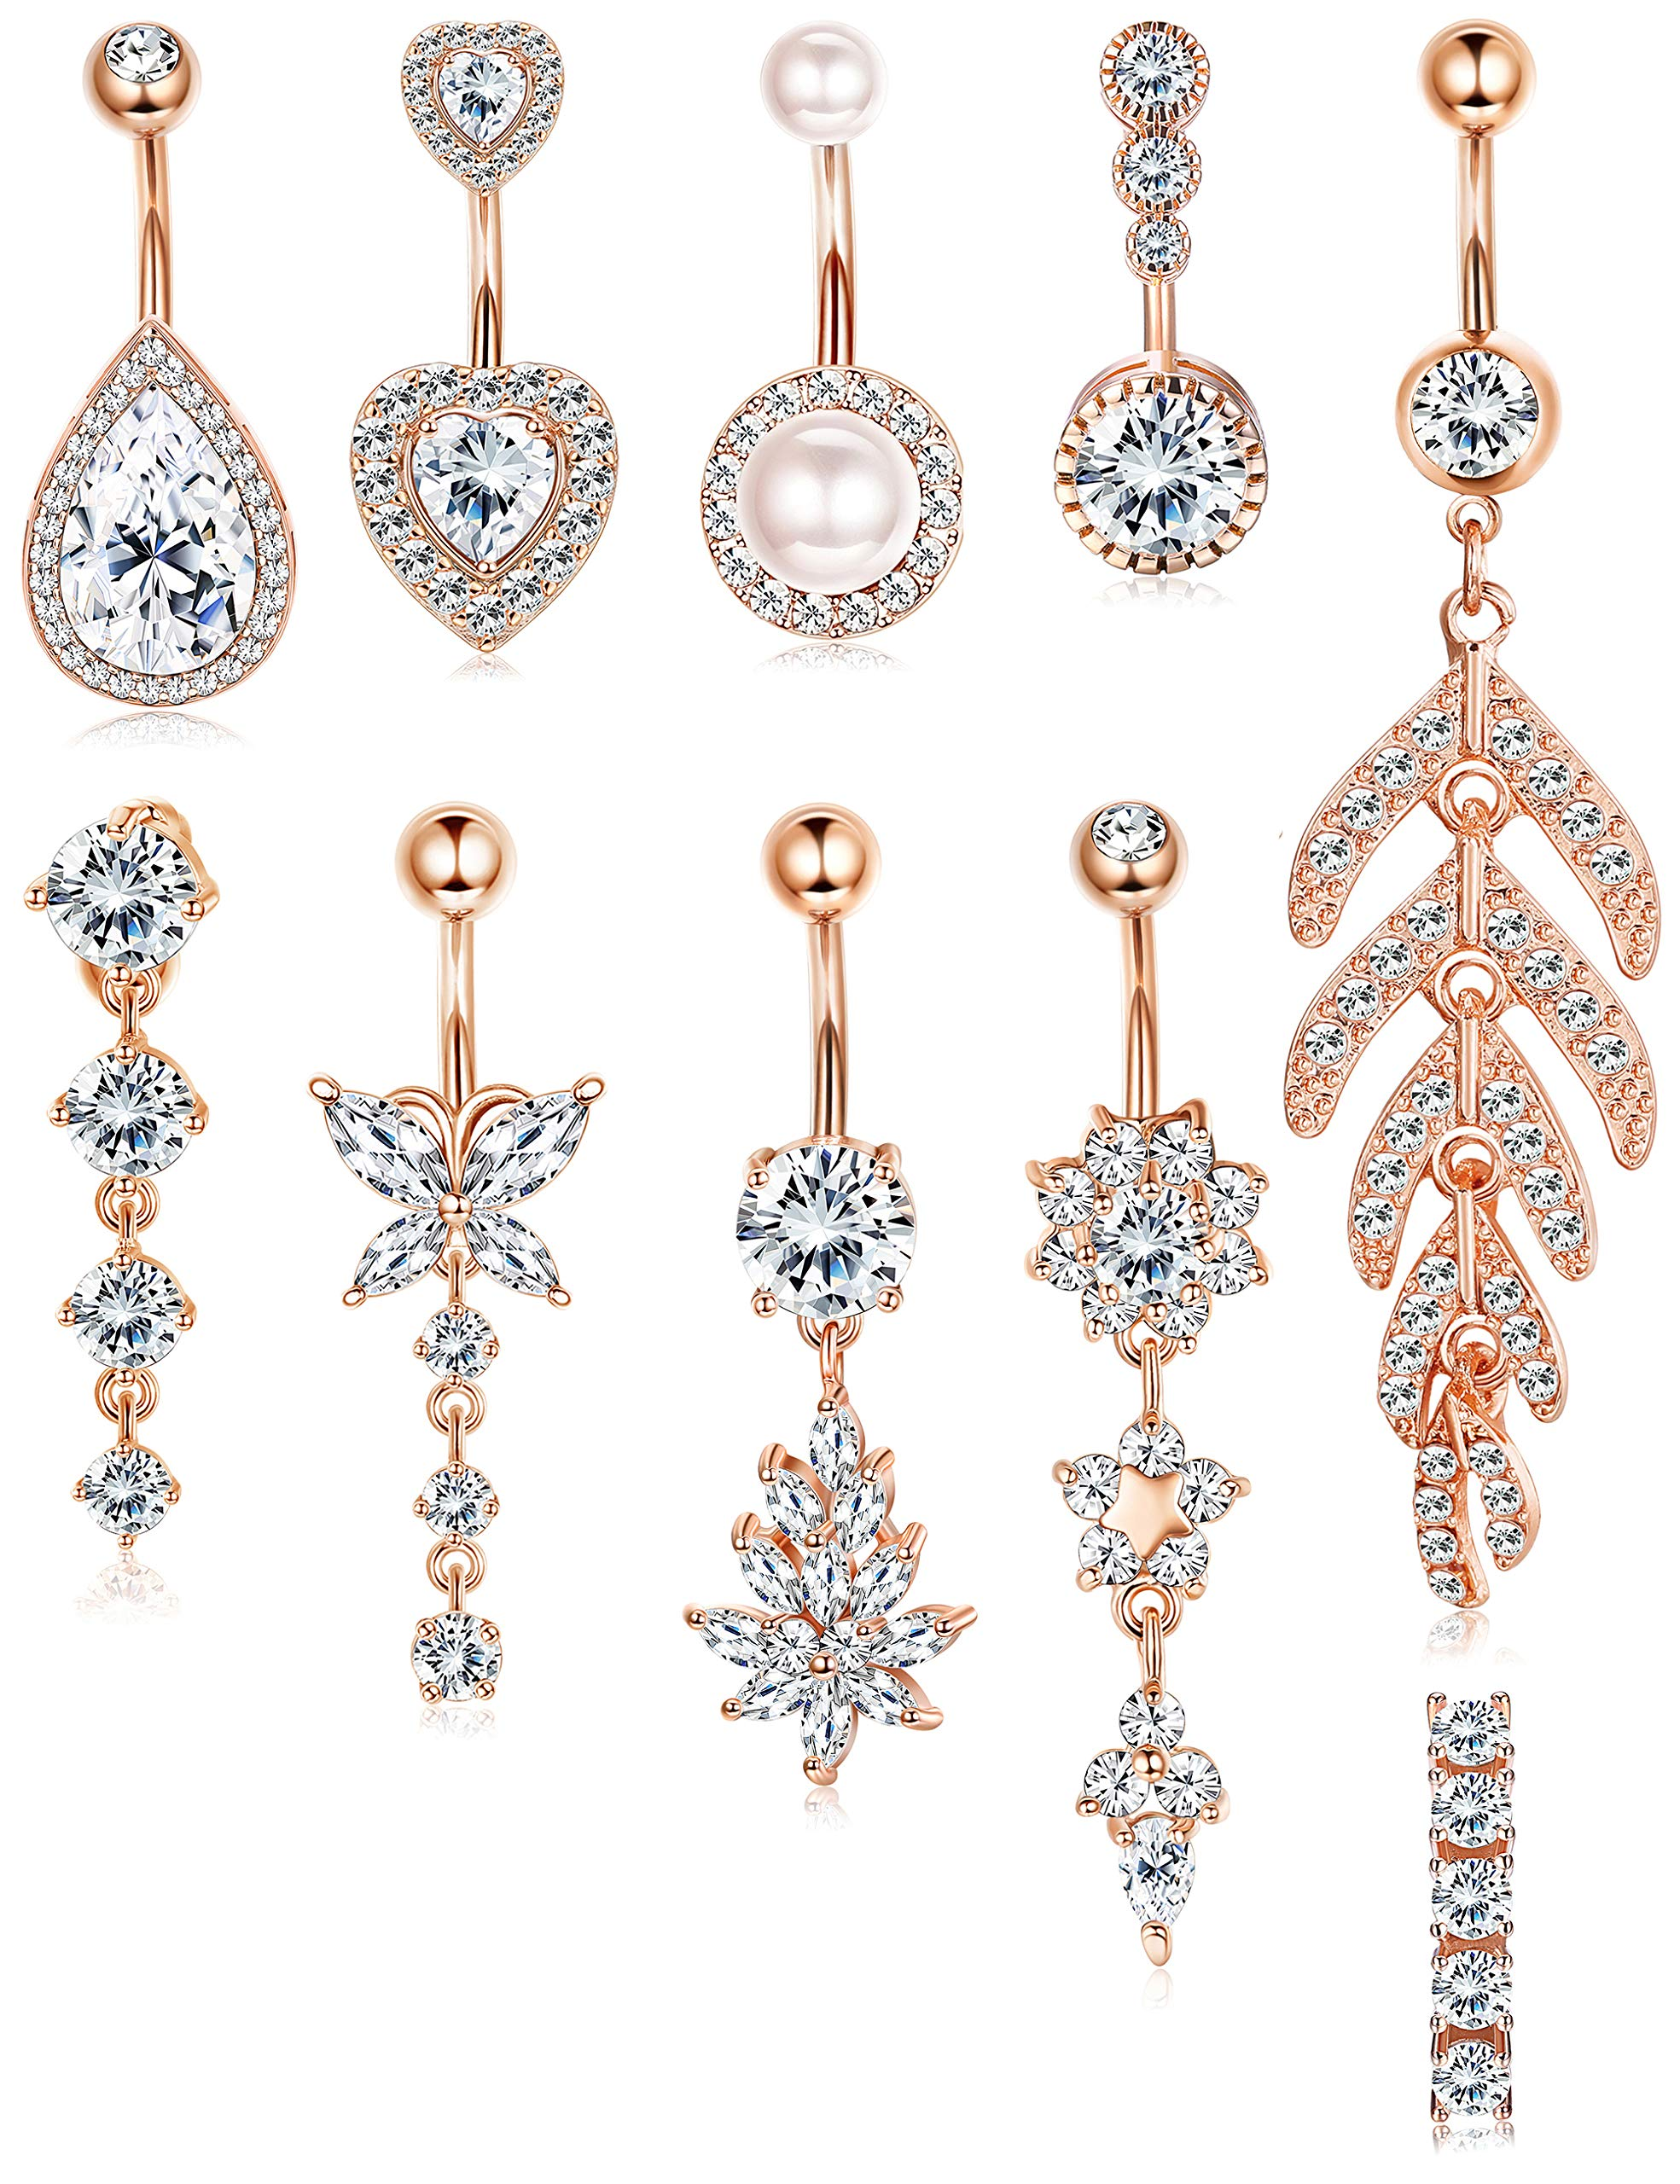 ORAZIO Belly Button Rings for Women 14G Stainless Steel CZ Pearl Dangle Navel Belly Ring Set Rose Gold Tone